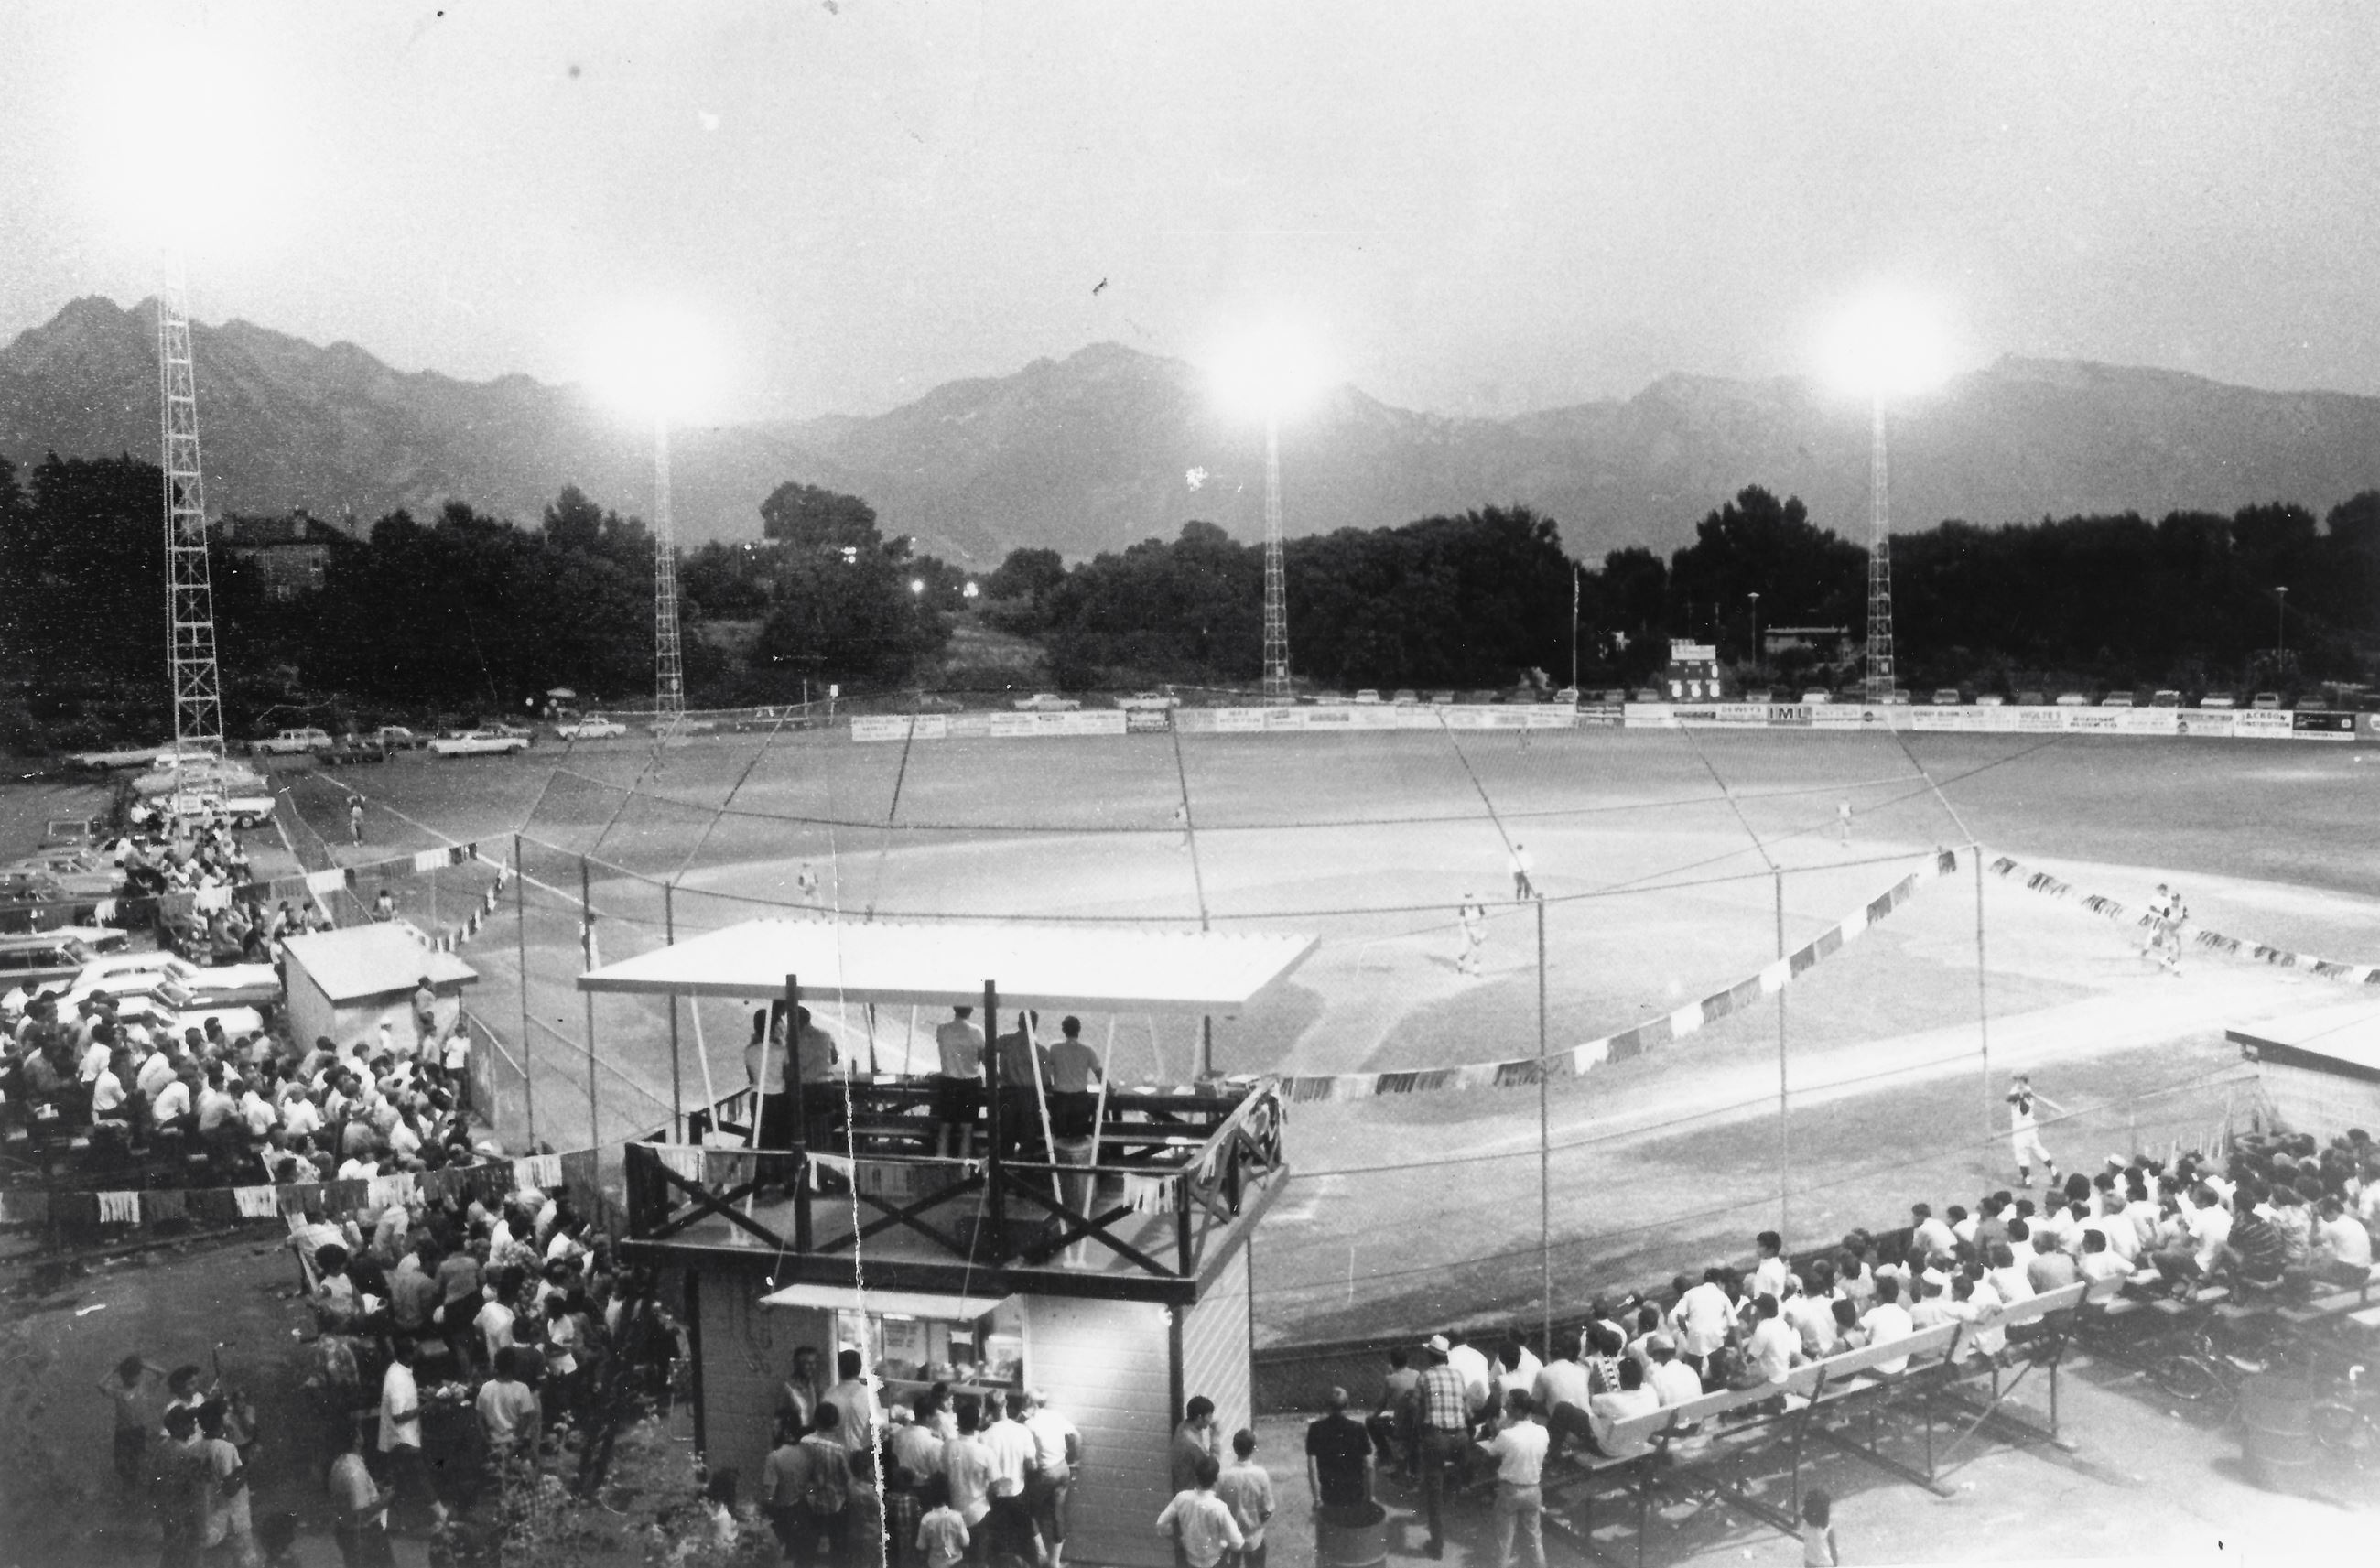 Ken Price Ballfield dedication 1969